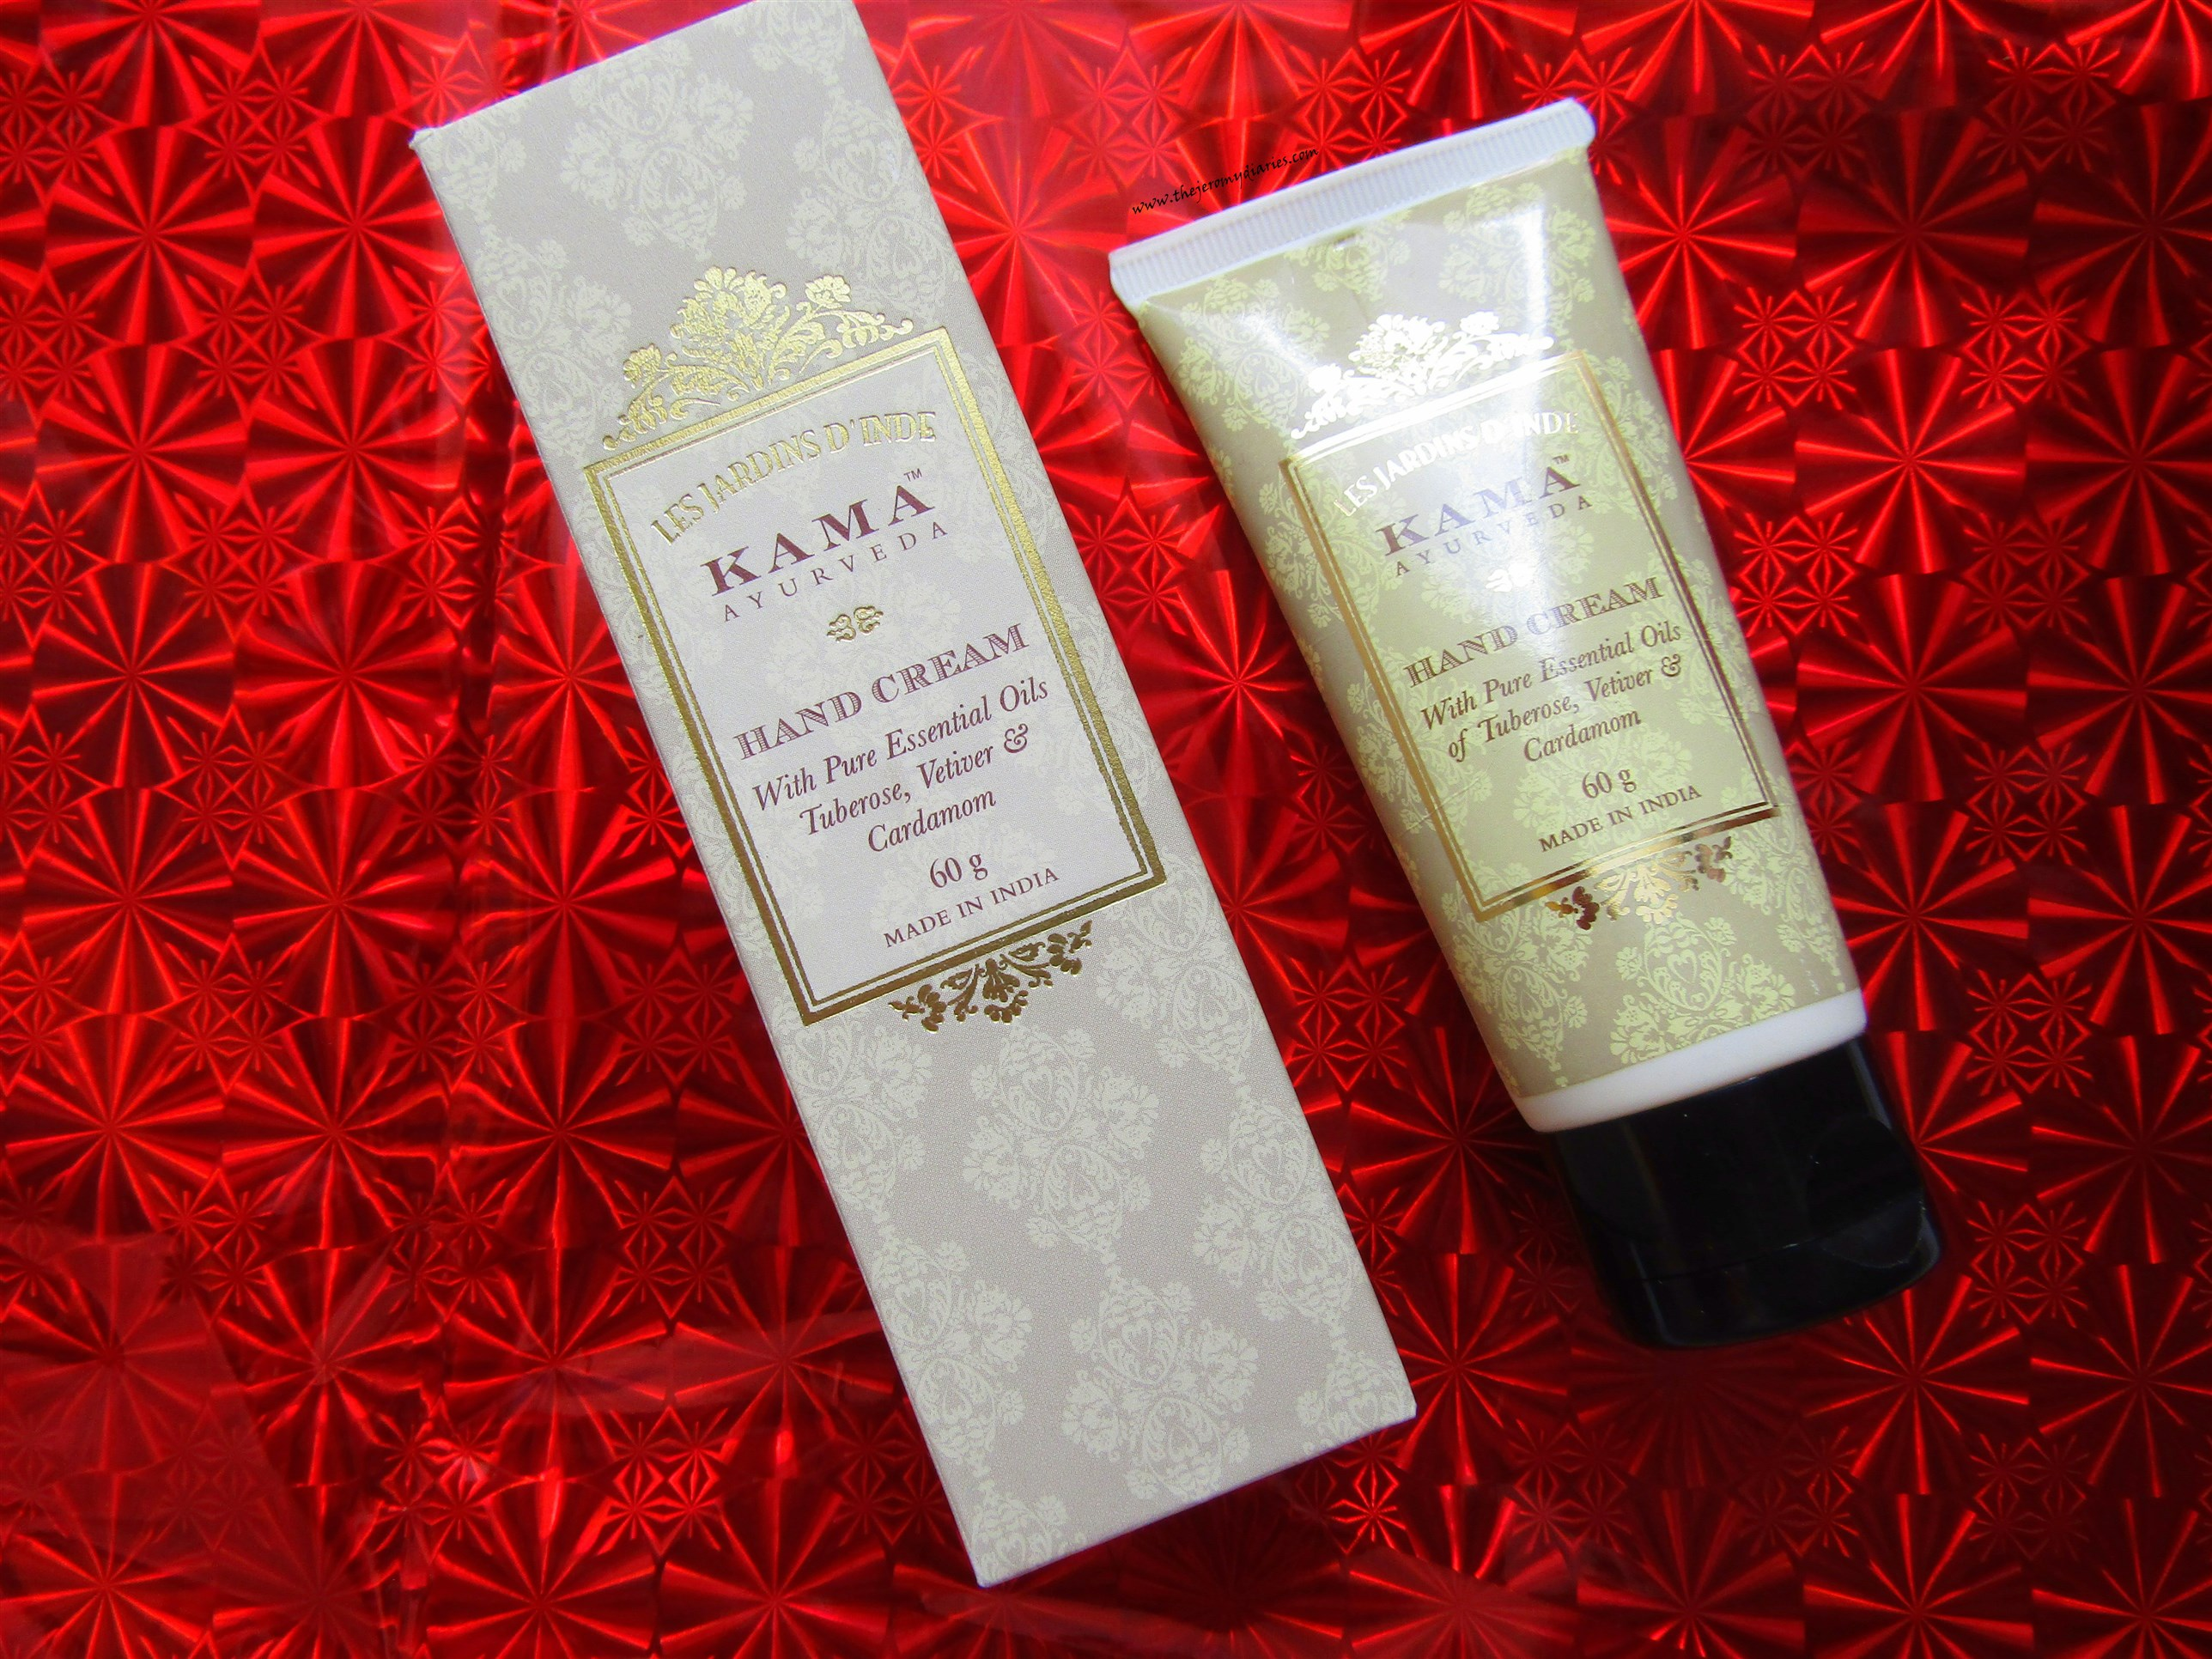 kama ayurveda hand cream packaging the jeromy diaries